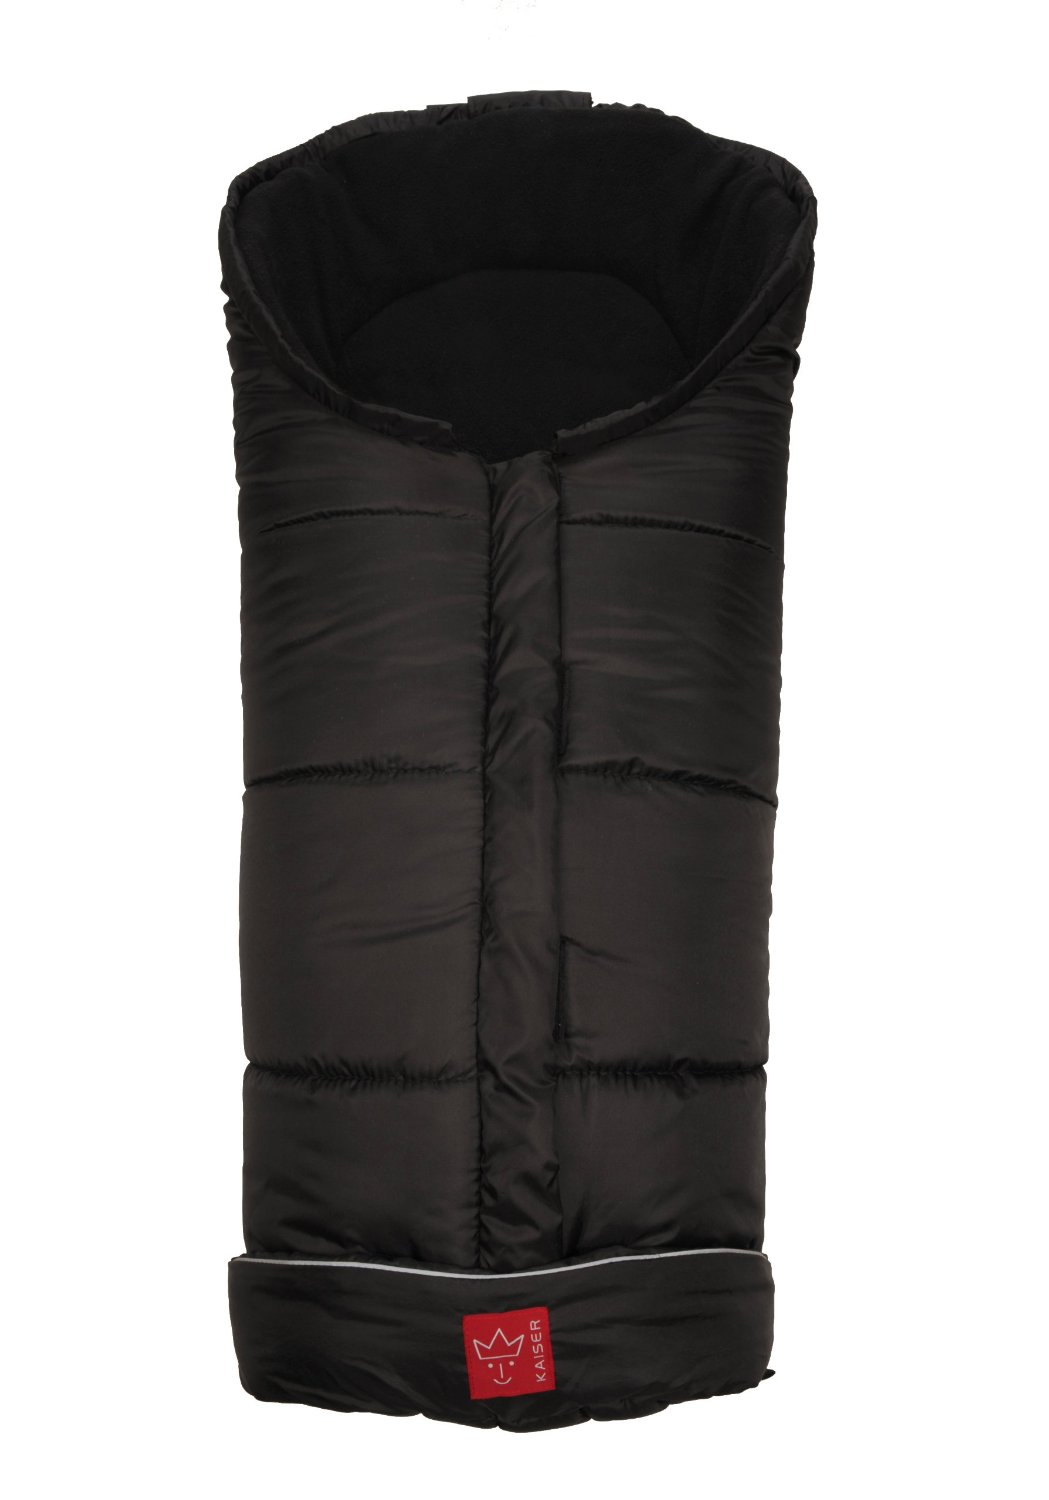 Kaiser Chanceliere Iglu Thermo Fleece - Noir